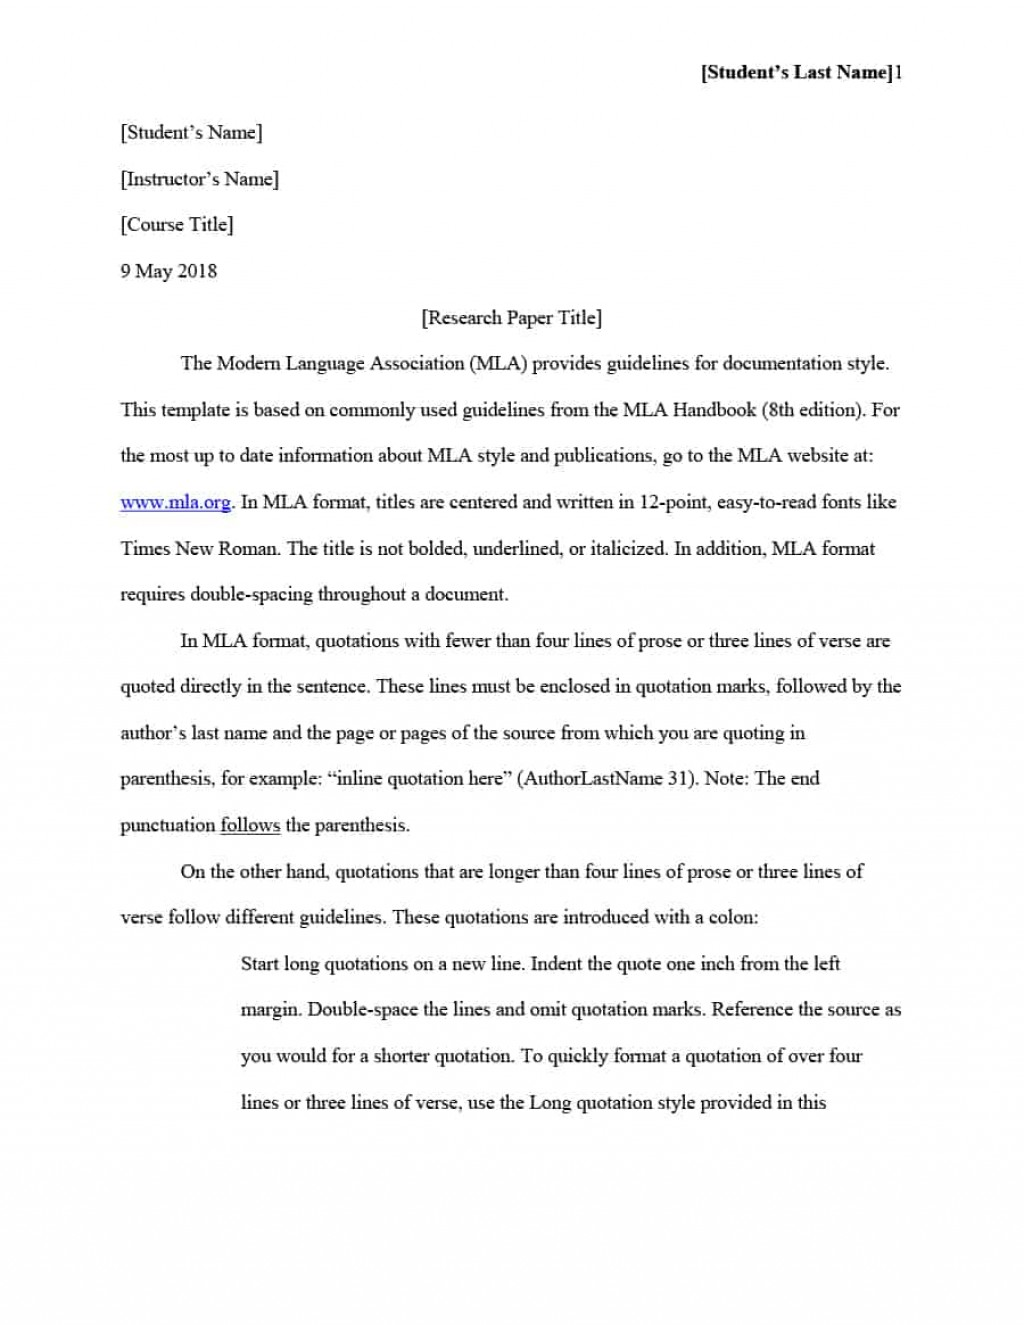 007 Research Paper Mla Format Template How To Cite Book Rare A In Large